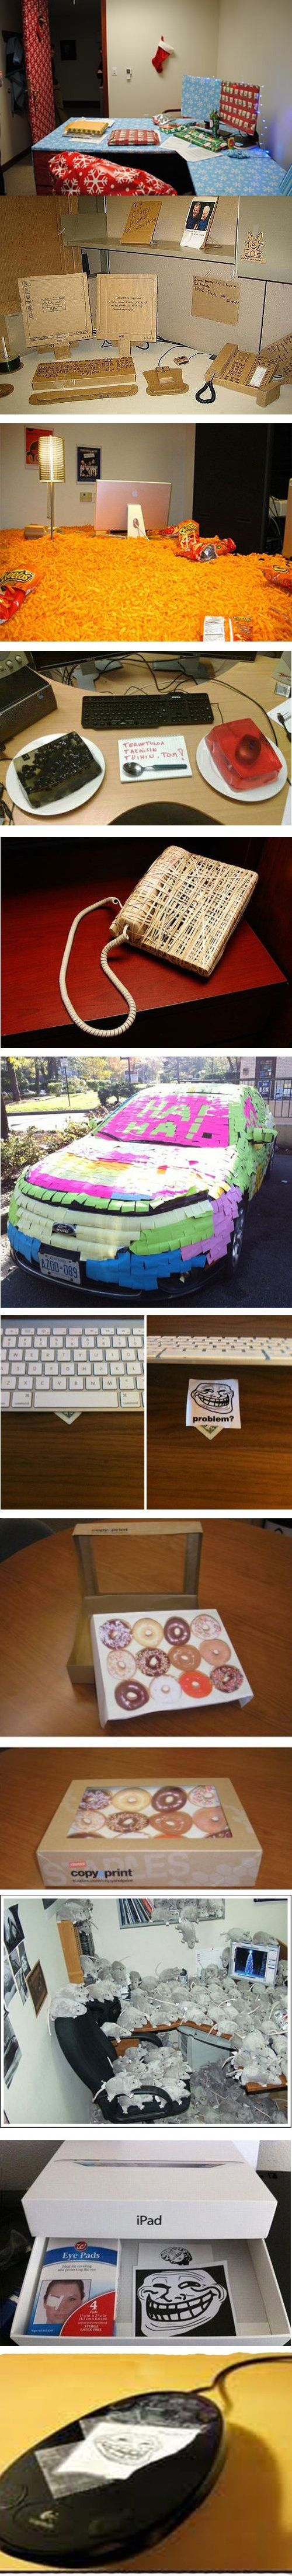 Office Pranks. I didn't want to work in an office whenI grew up before seeing this, but now I really don't if there is a potential for these things to happen.